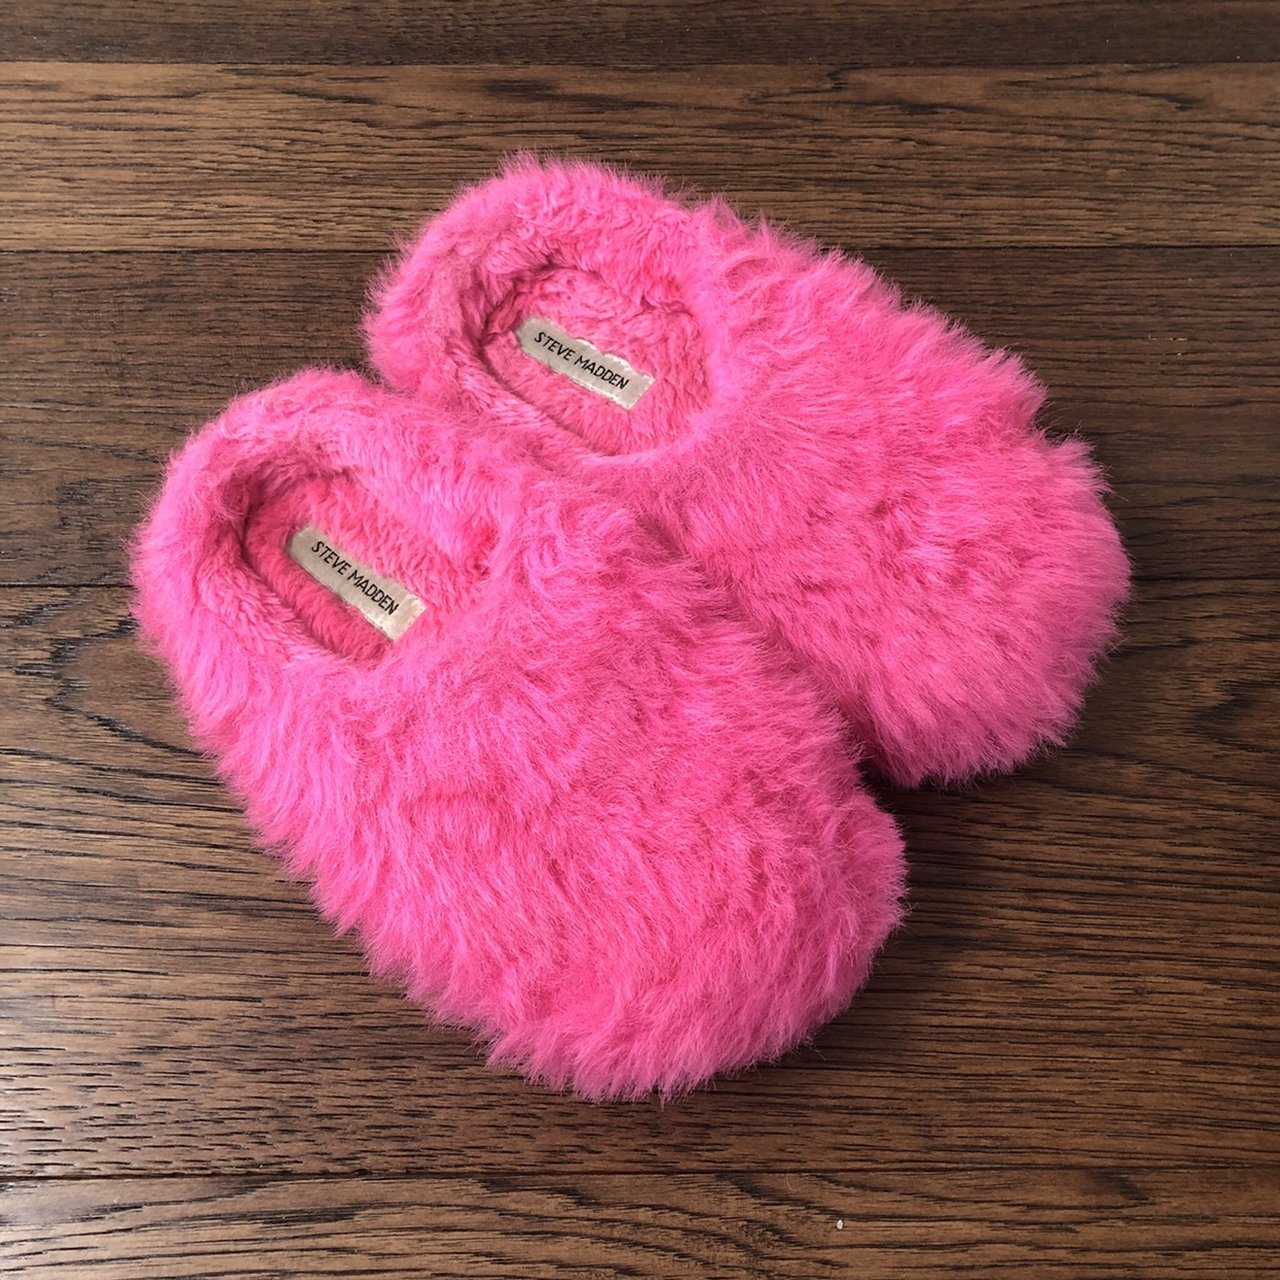 60e0c4488cc 90s fuzzy pink Steve Madden slippers Size 8 women s Insole - Depop